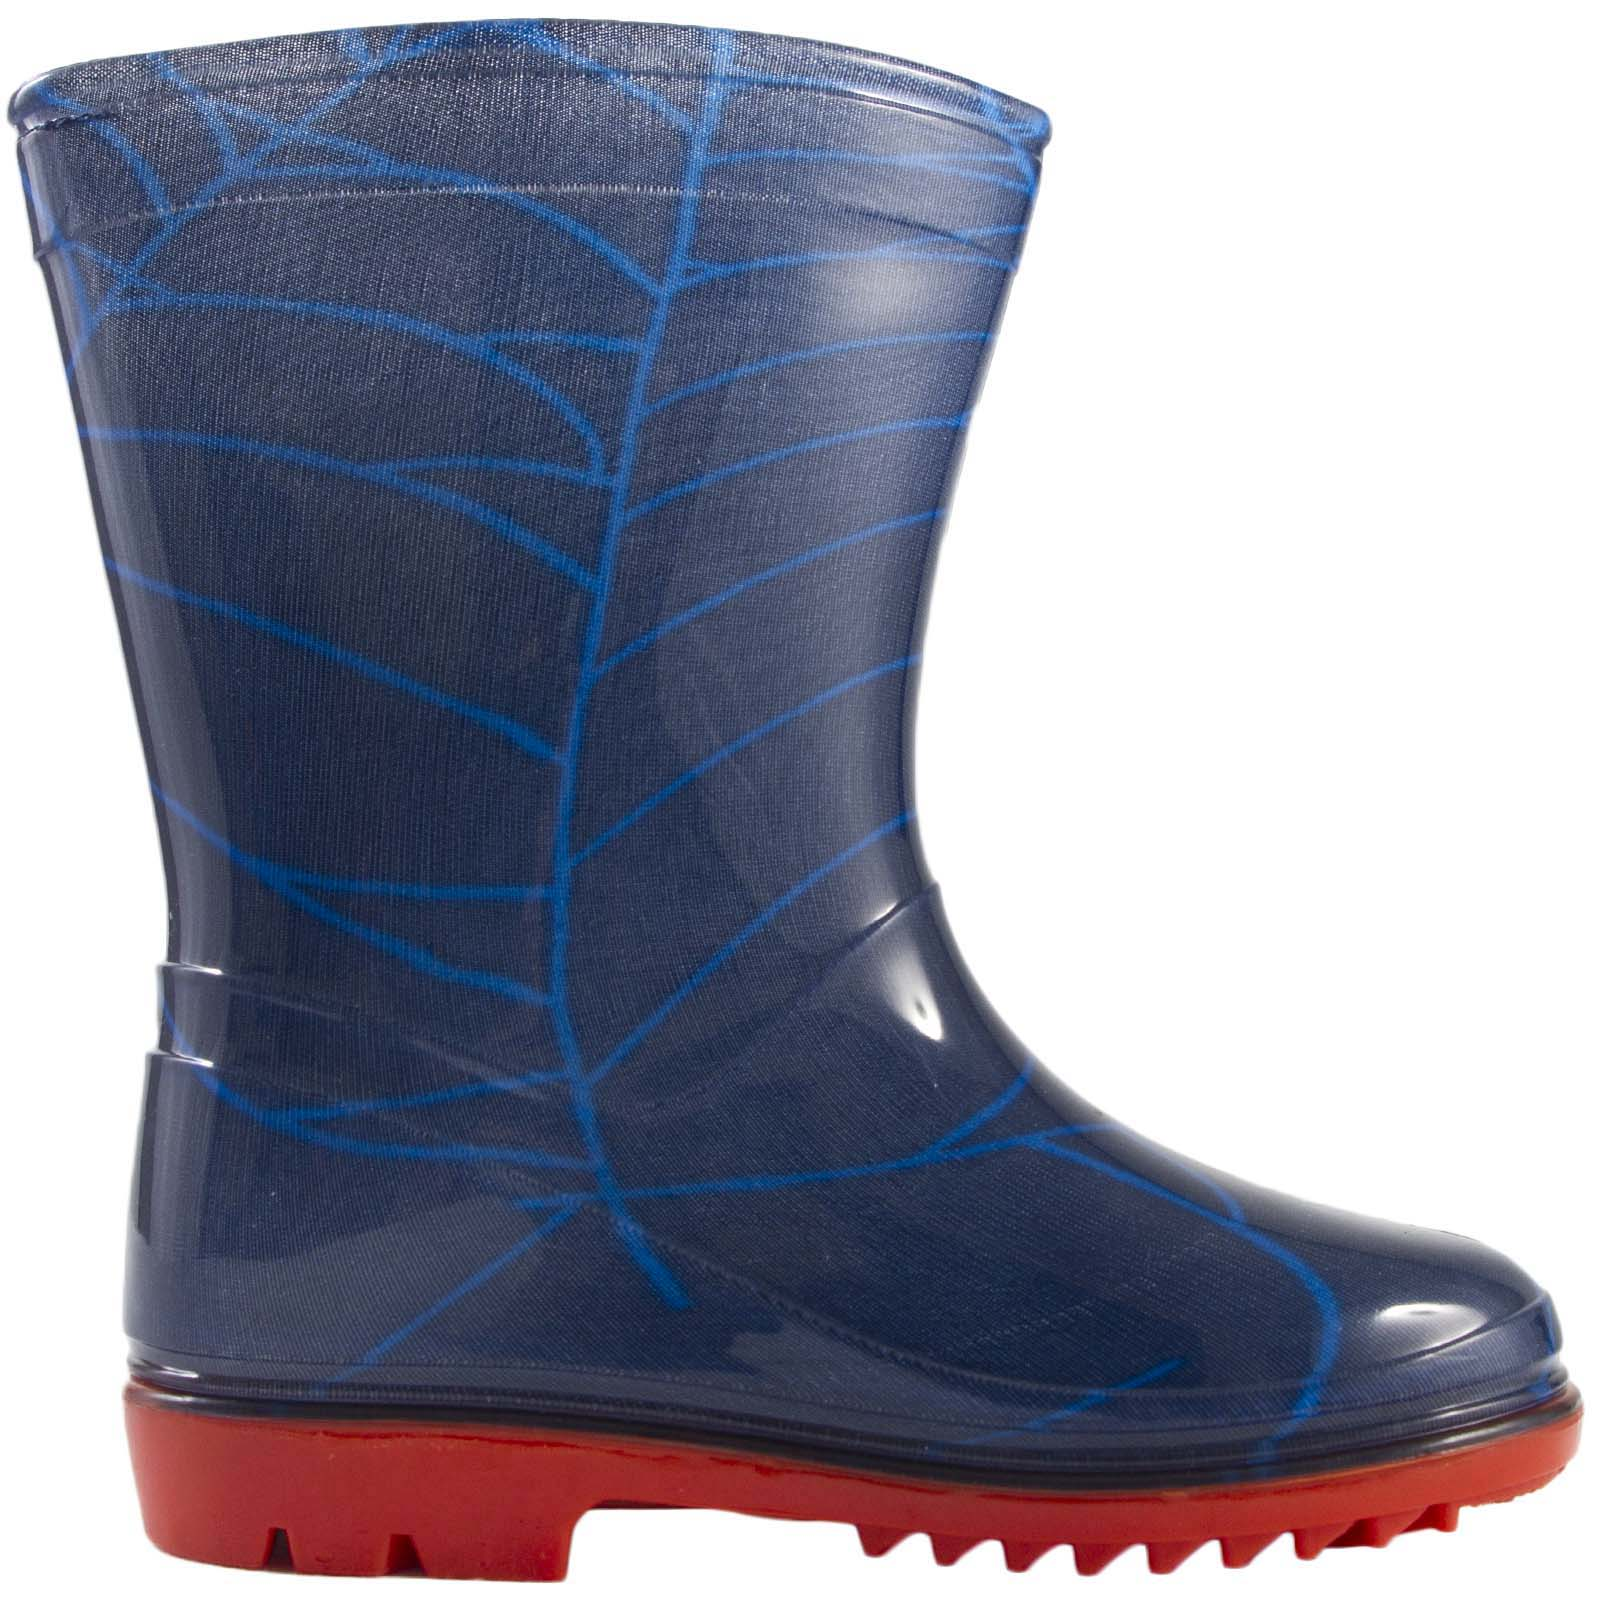 KIDS BOYS MARVEL SPIDERMAN SNOW WINTER BOOTS WELLIES